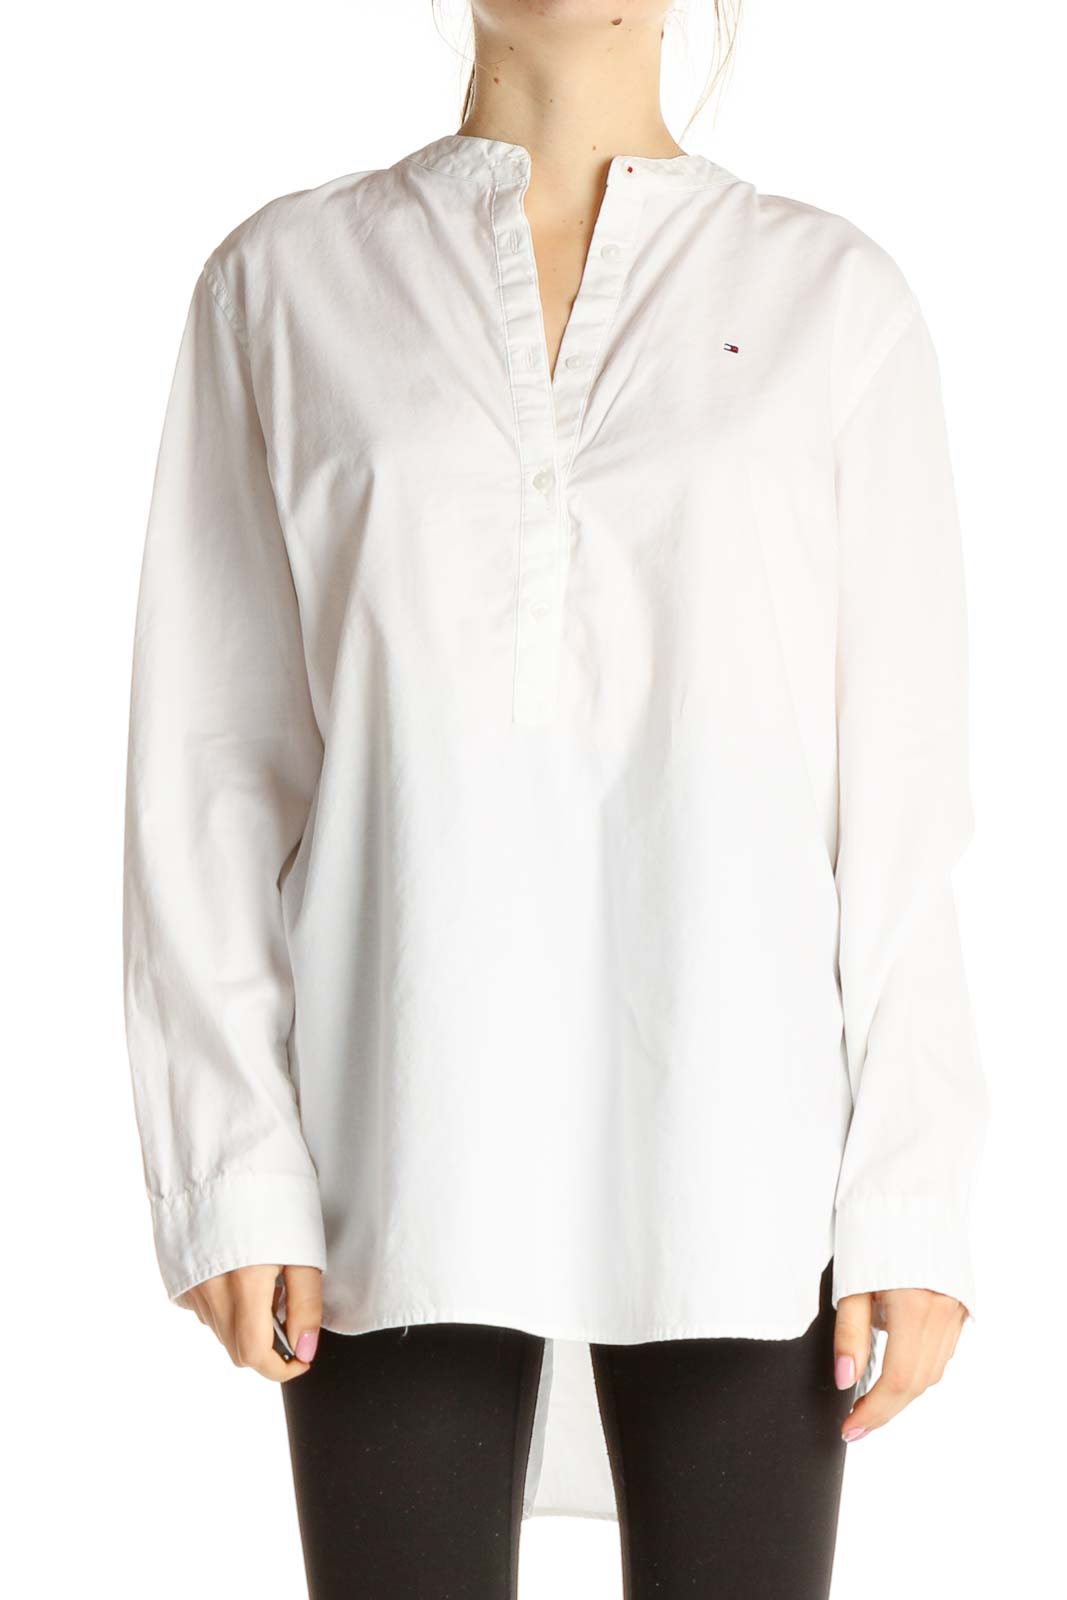 White Solid Formal Shirt Front